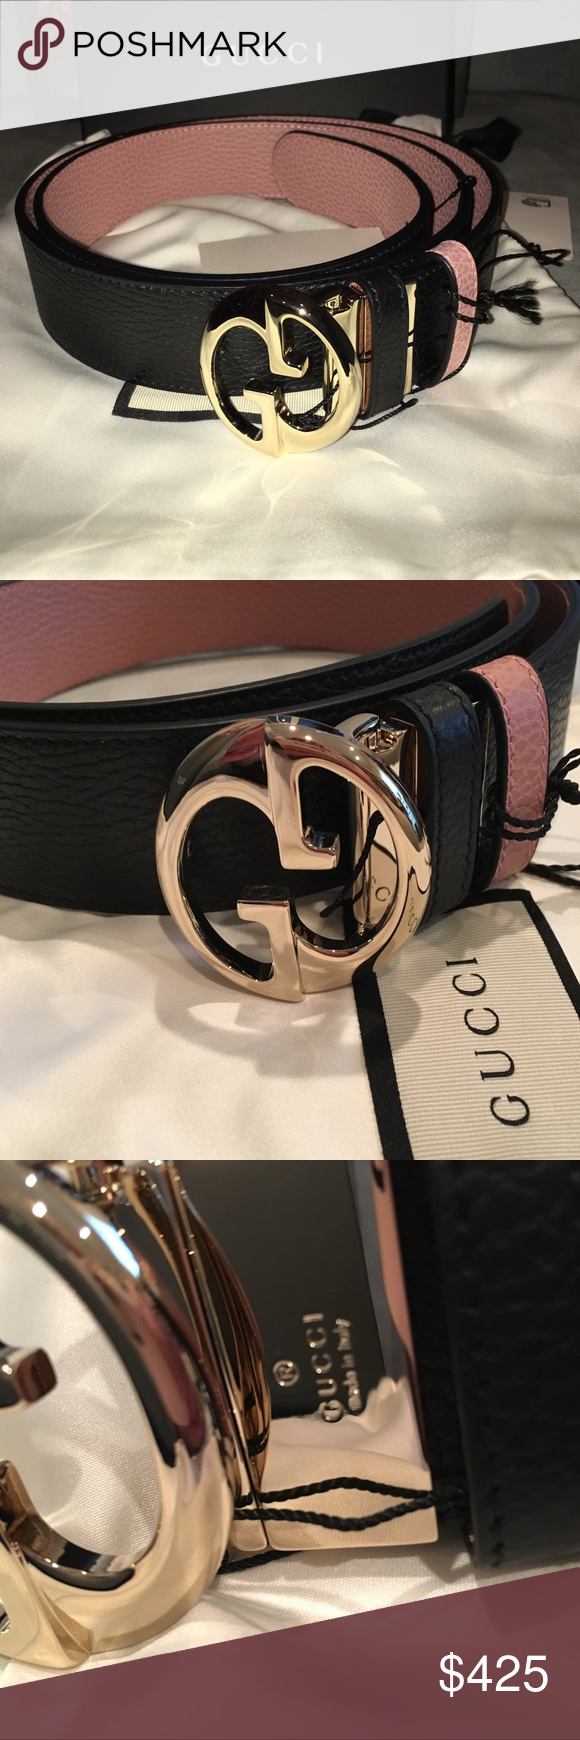 e76539a1f10 Gucci Reversible Belt Unisex 110cm Two belts in one! Authentic and brand  new GUCCI leather